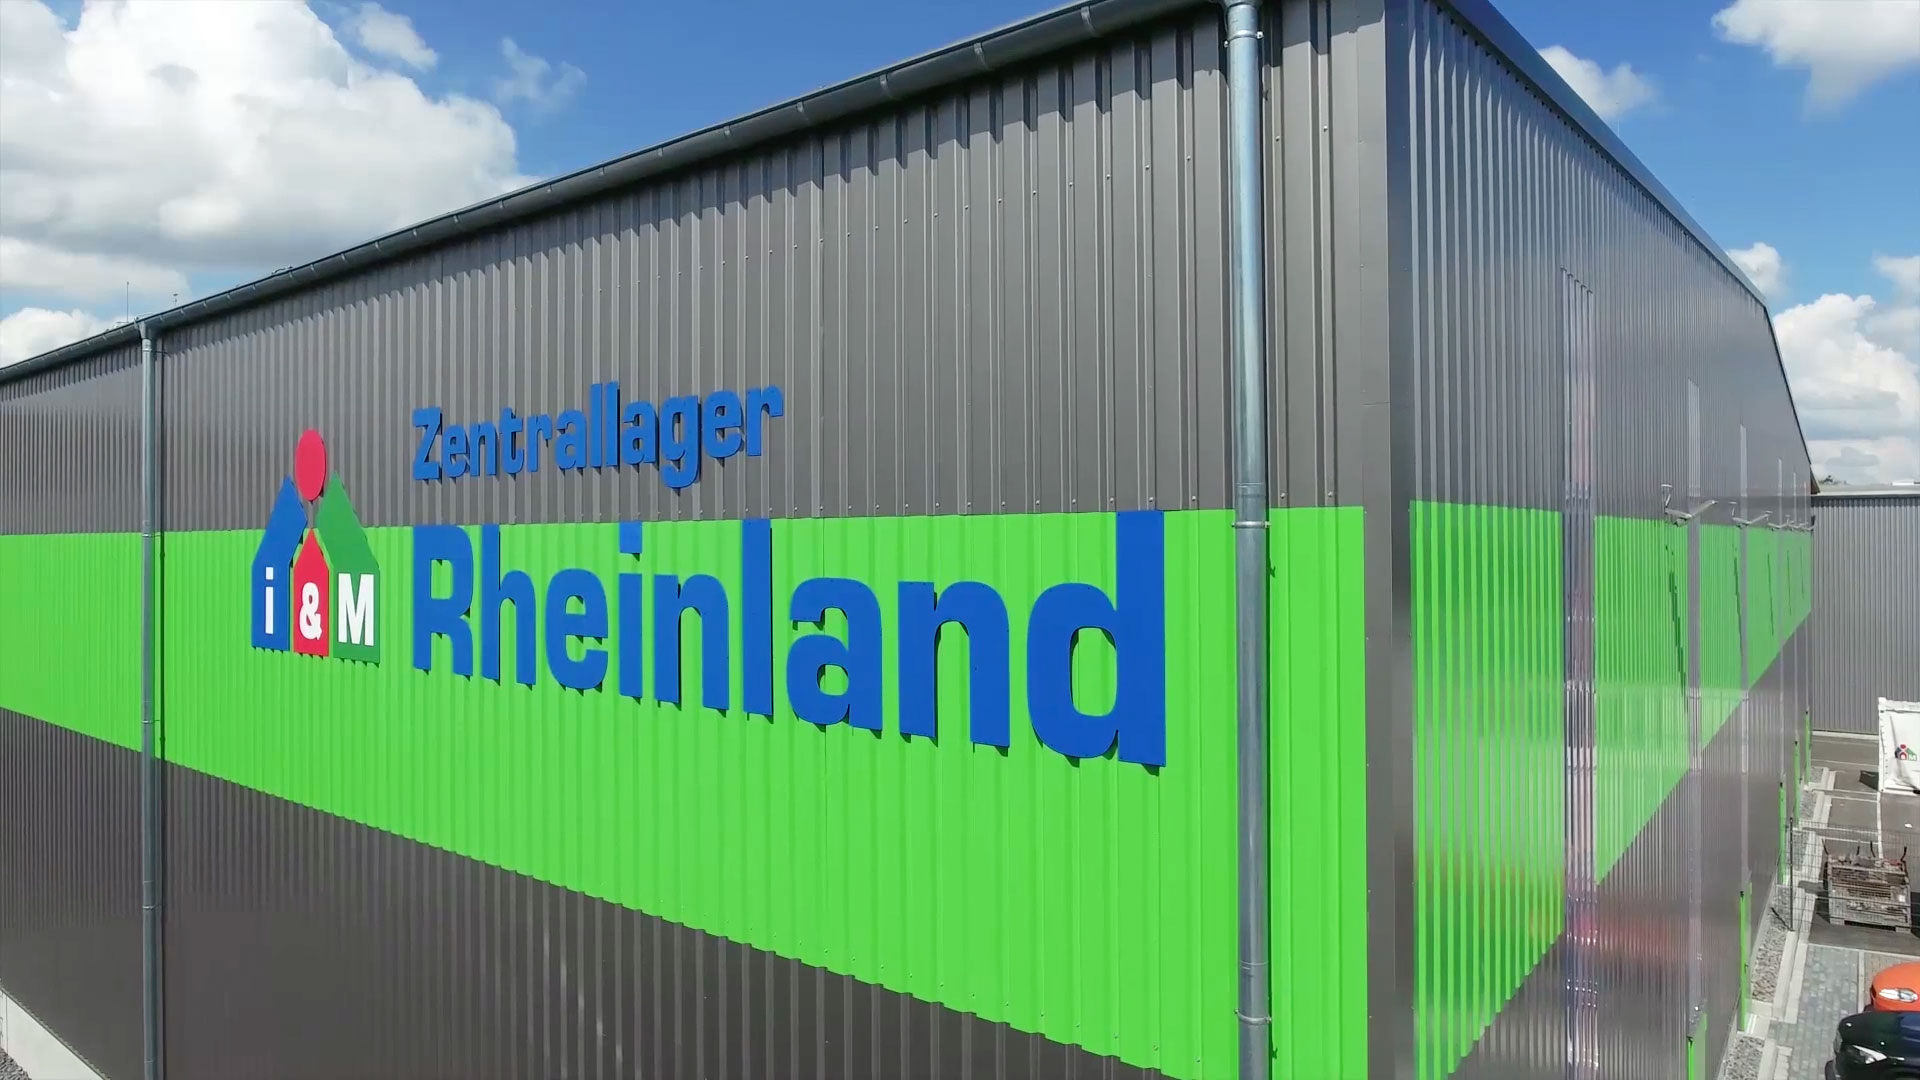 Event documentary of the 40 year anniversary event of Zentrallager Rheinland.